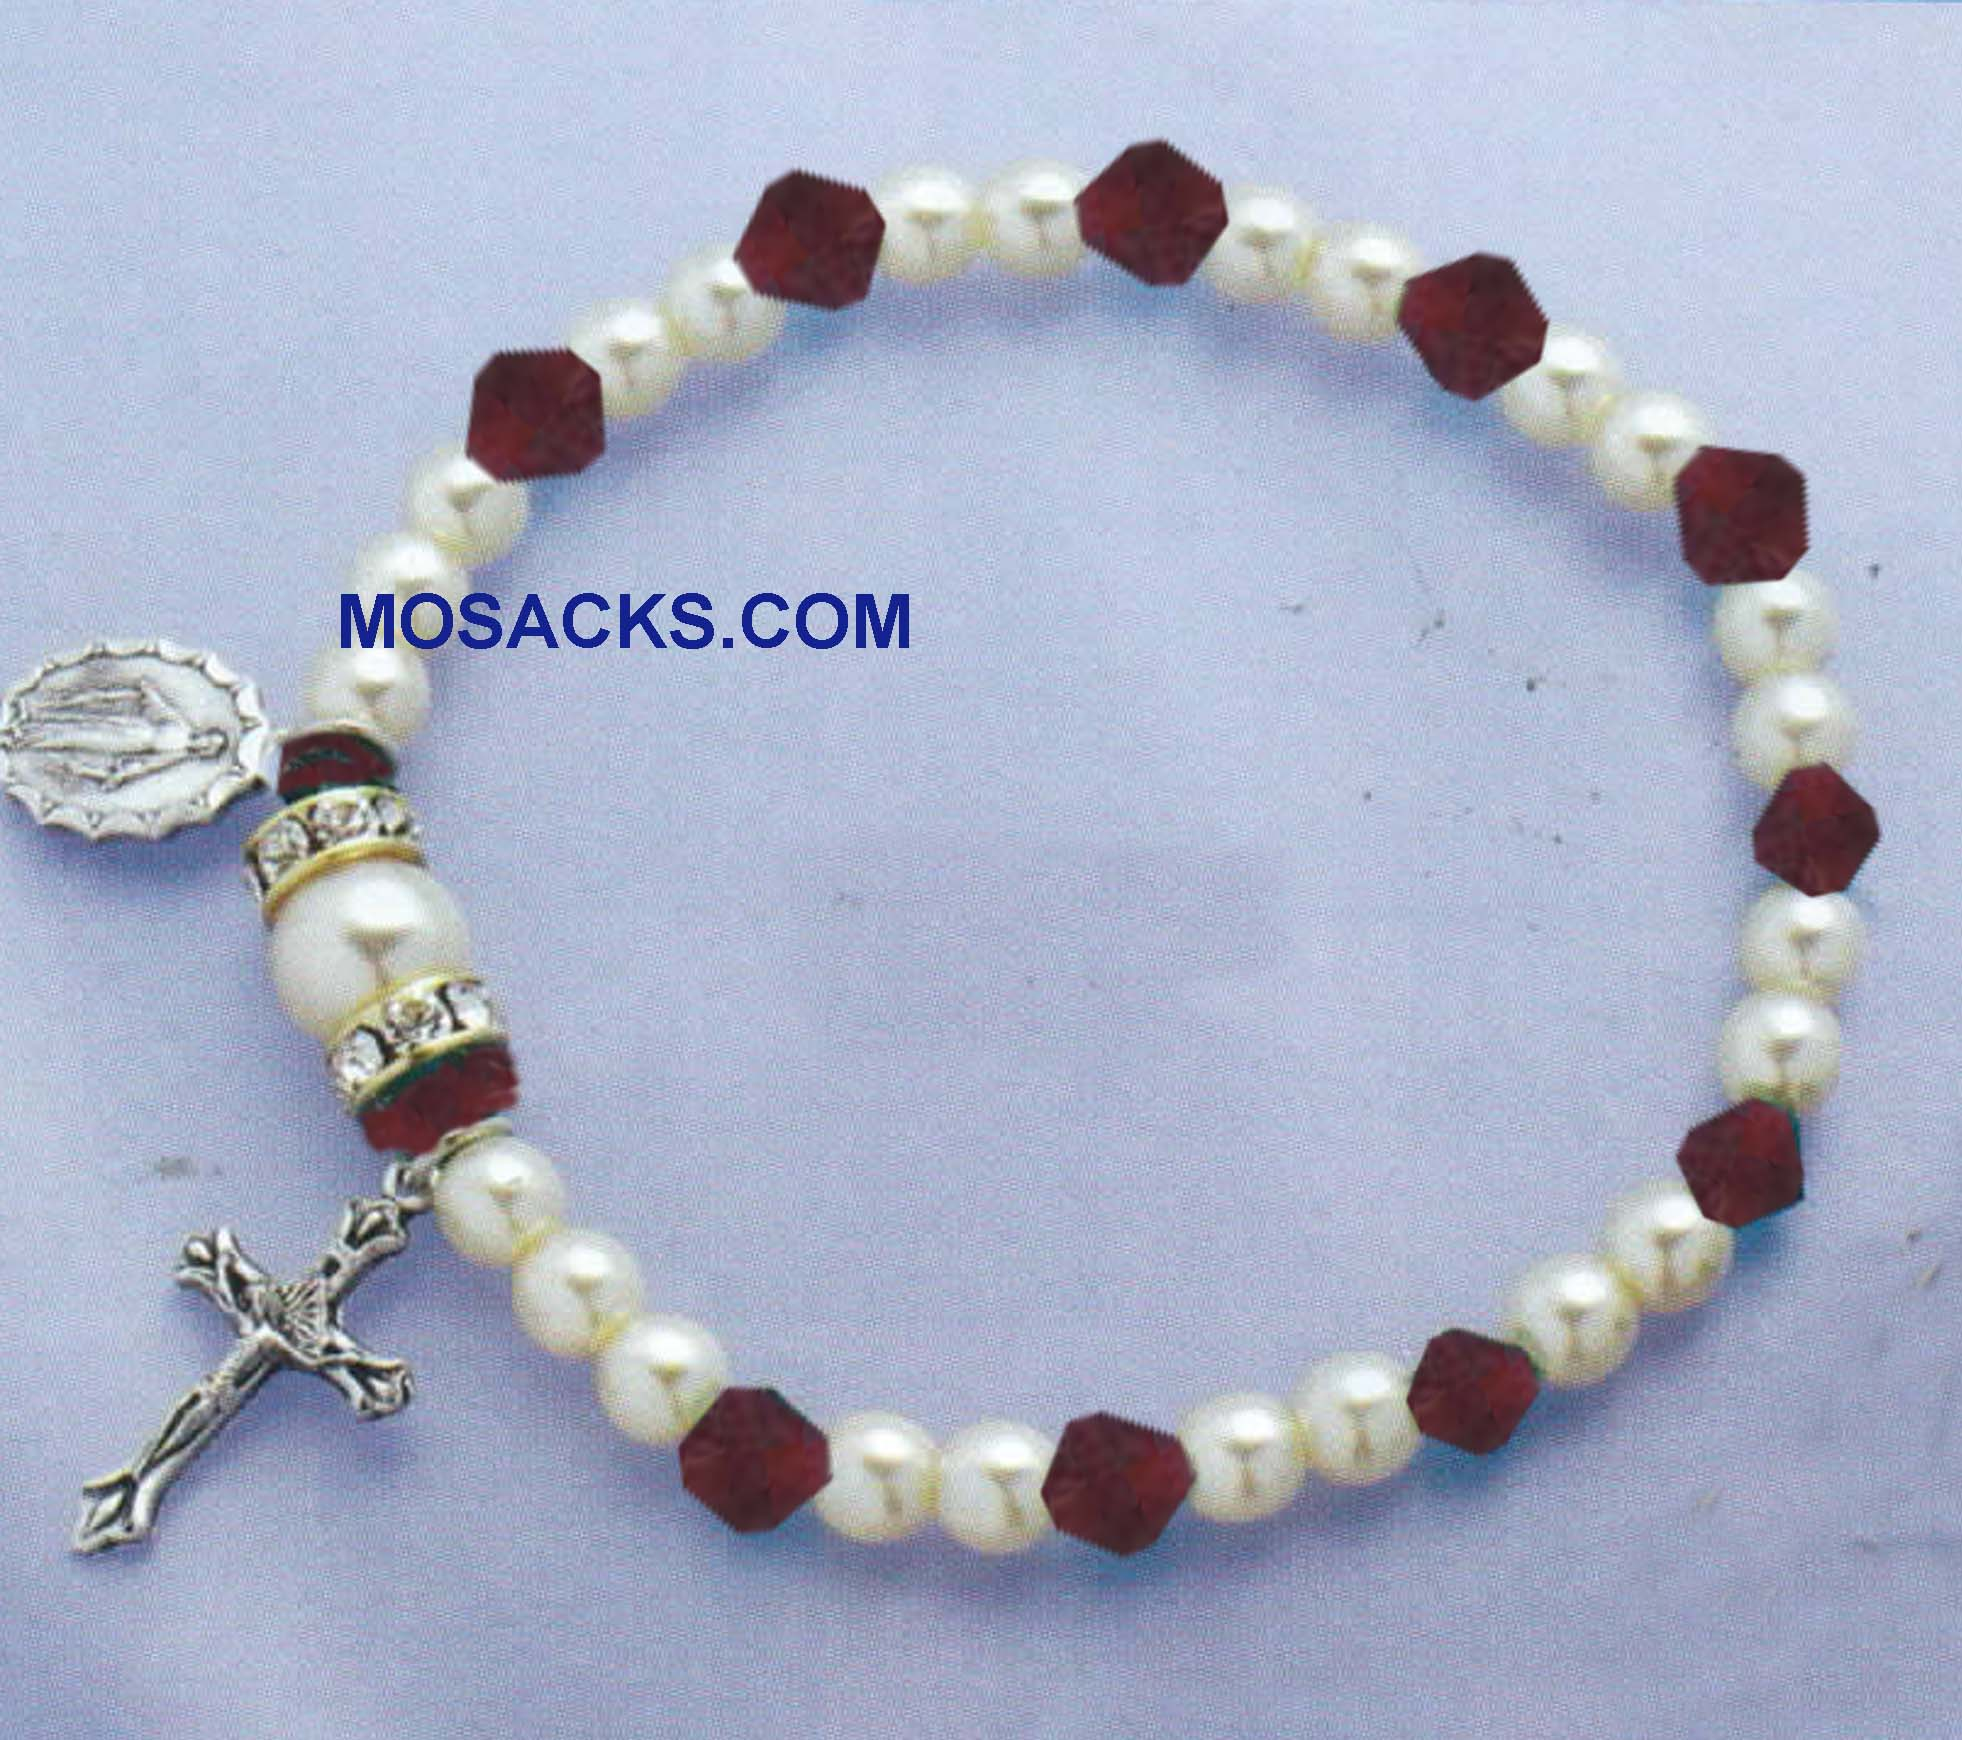 Birthstone Rosary Stretch Bracelet Ruby-45280RB